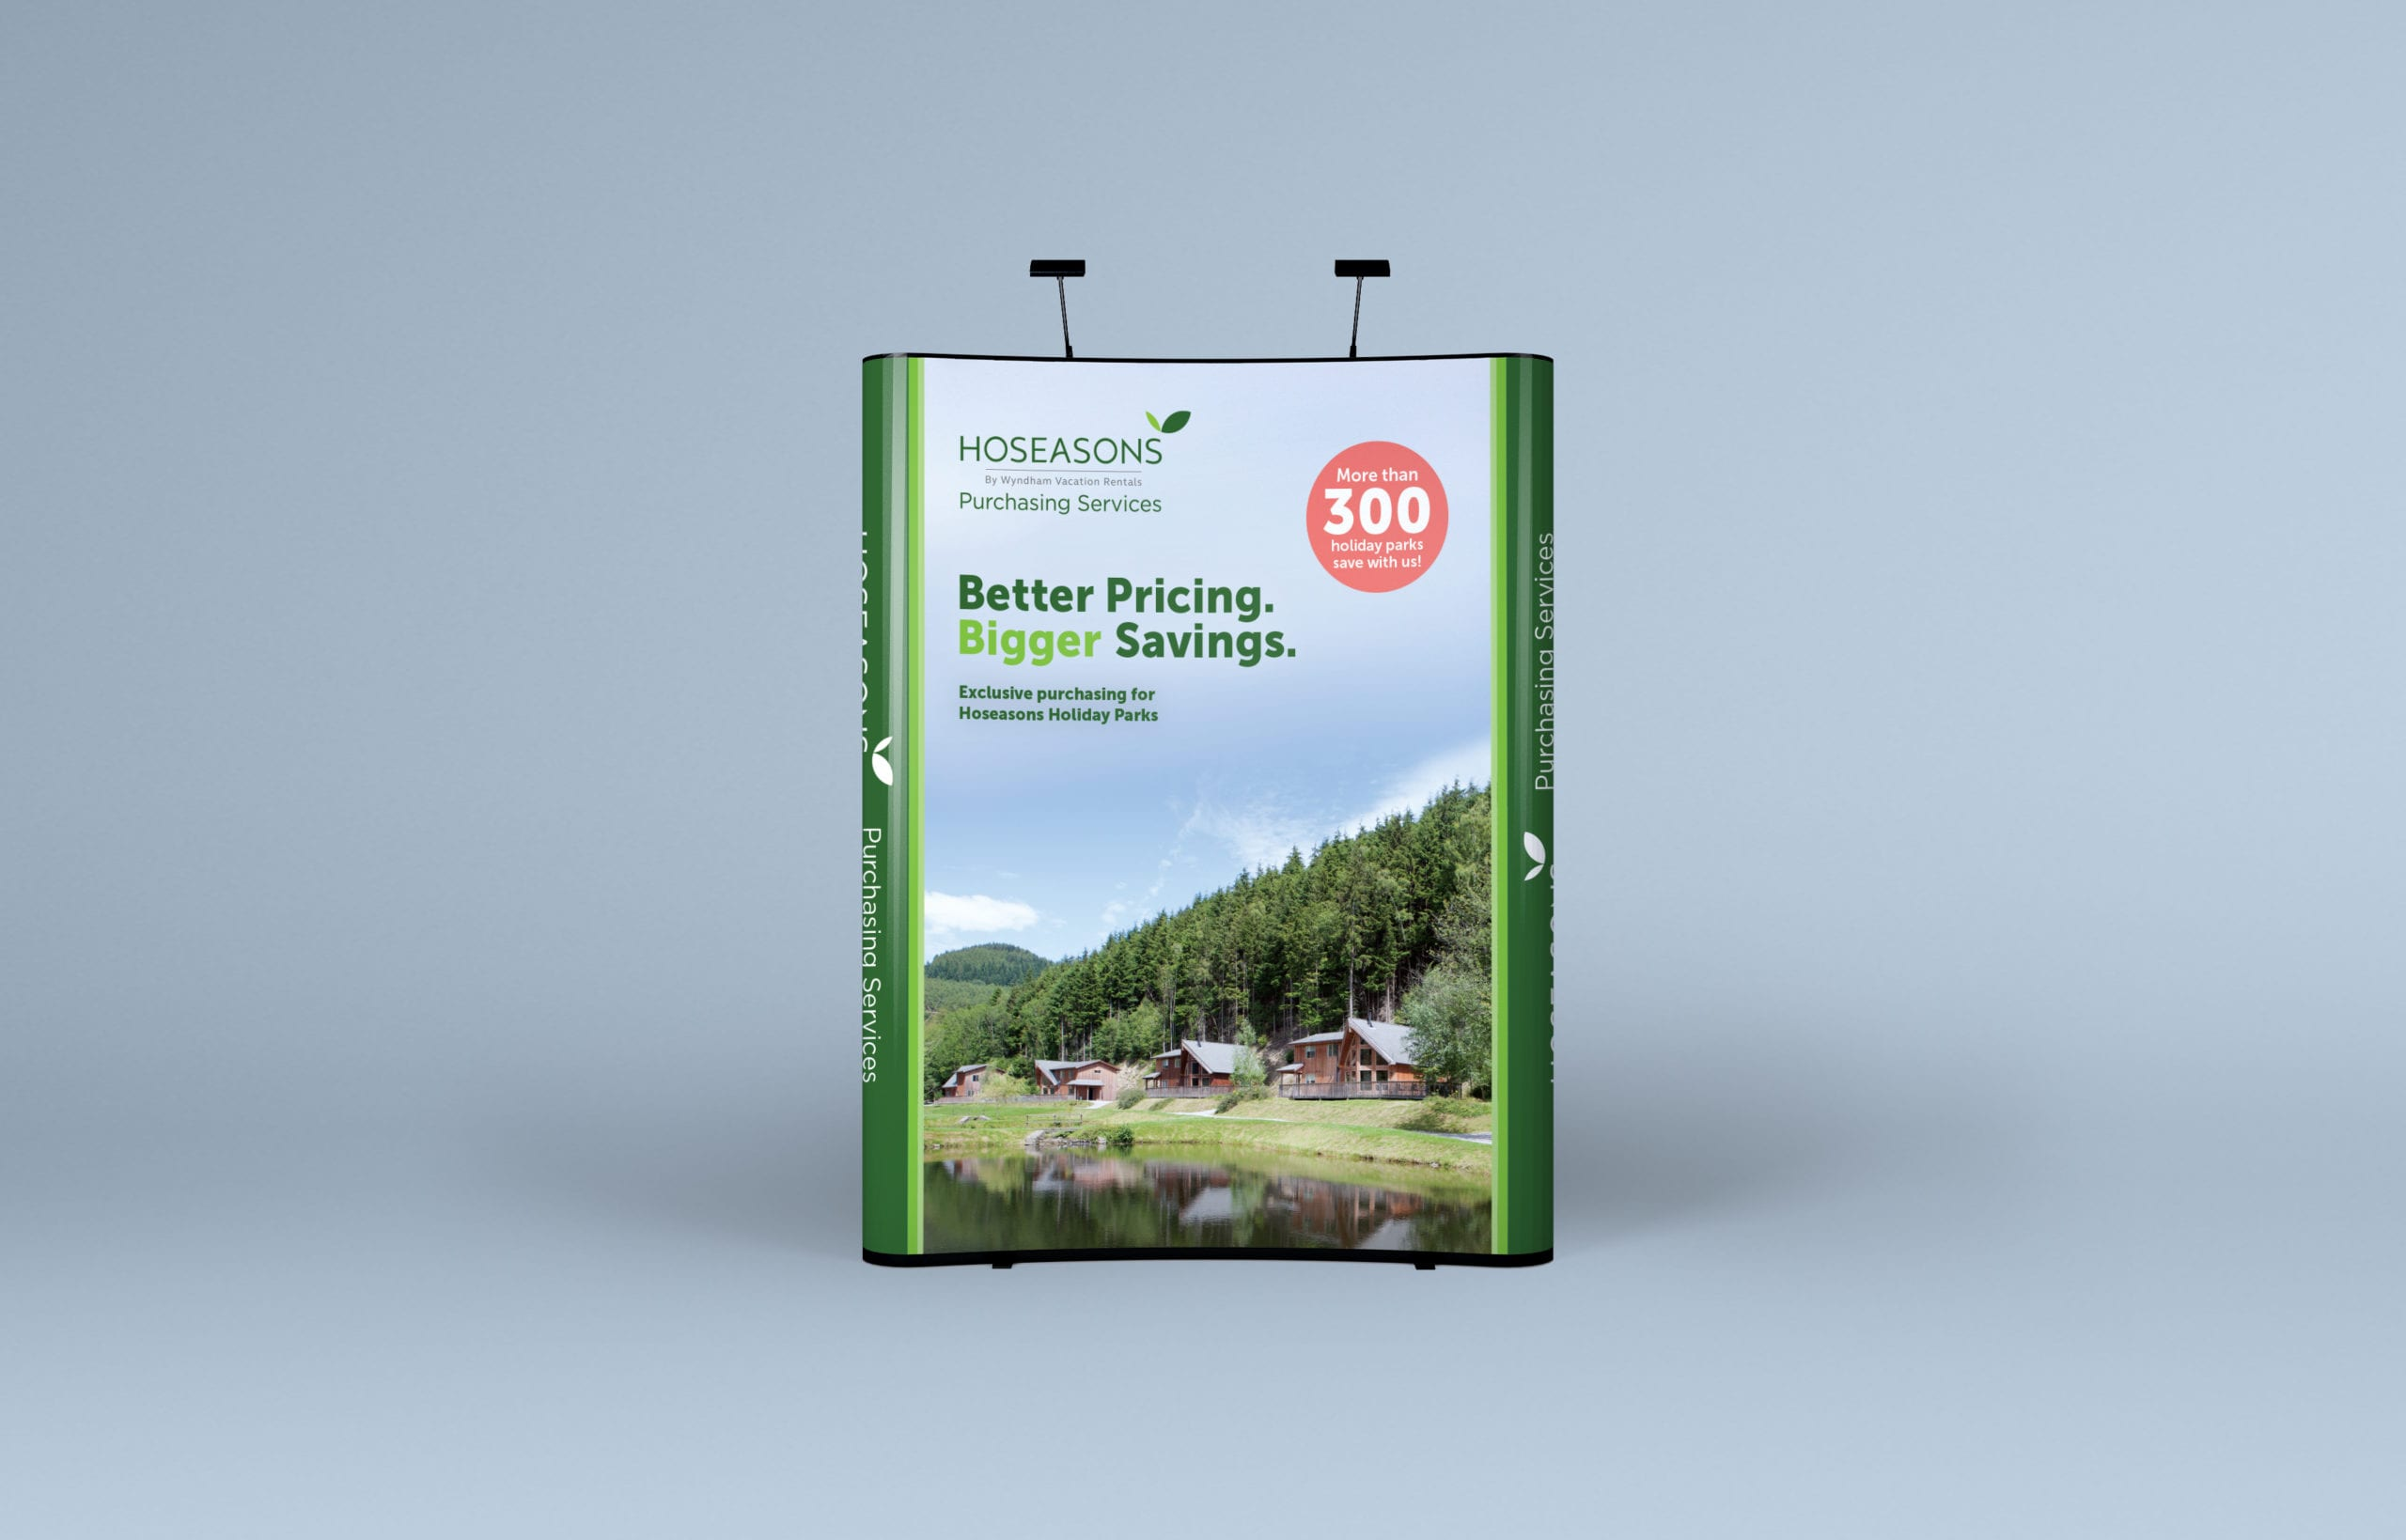 Popup display for Hoseasons Purchasing